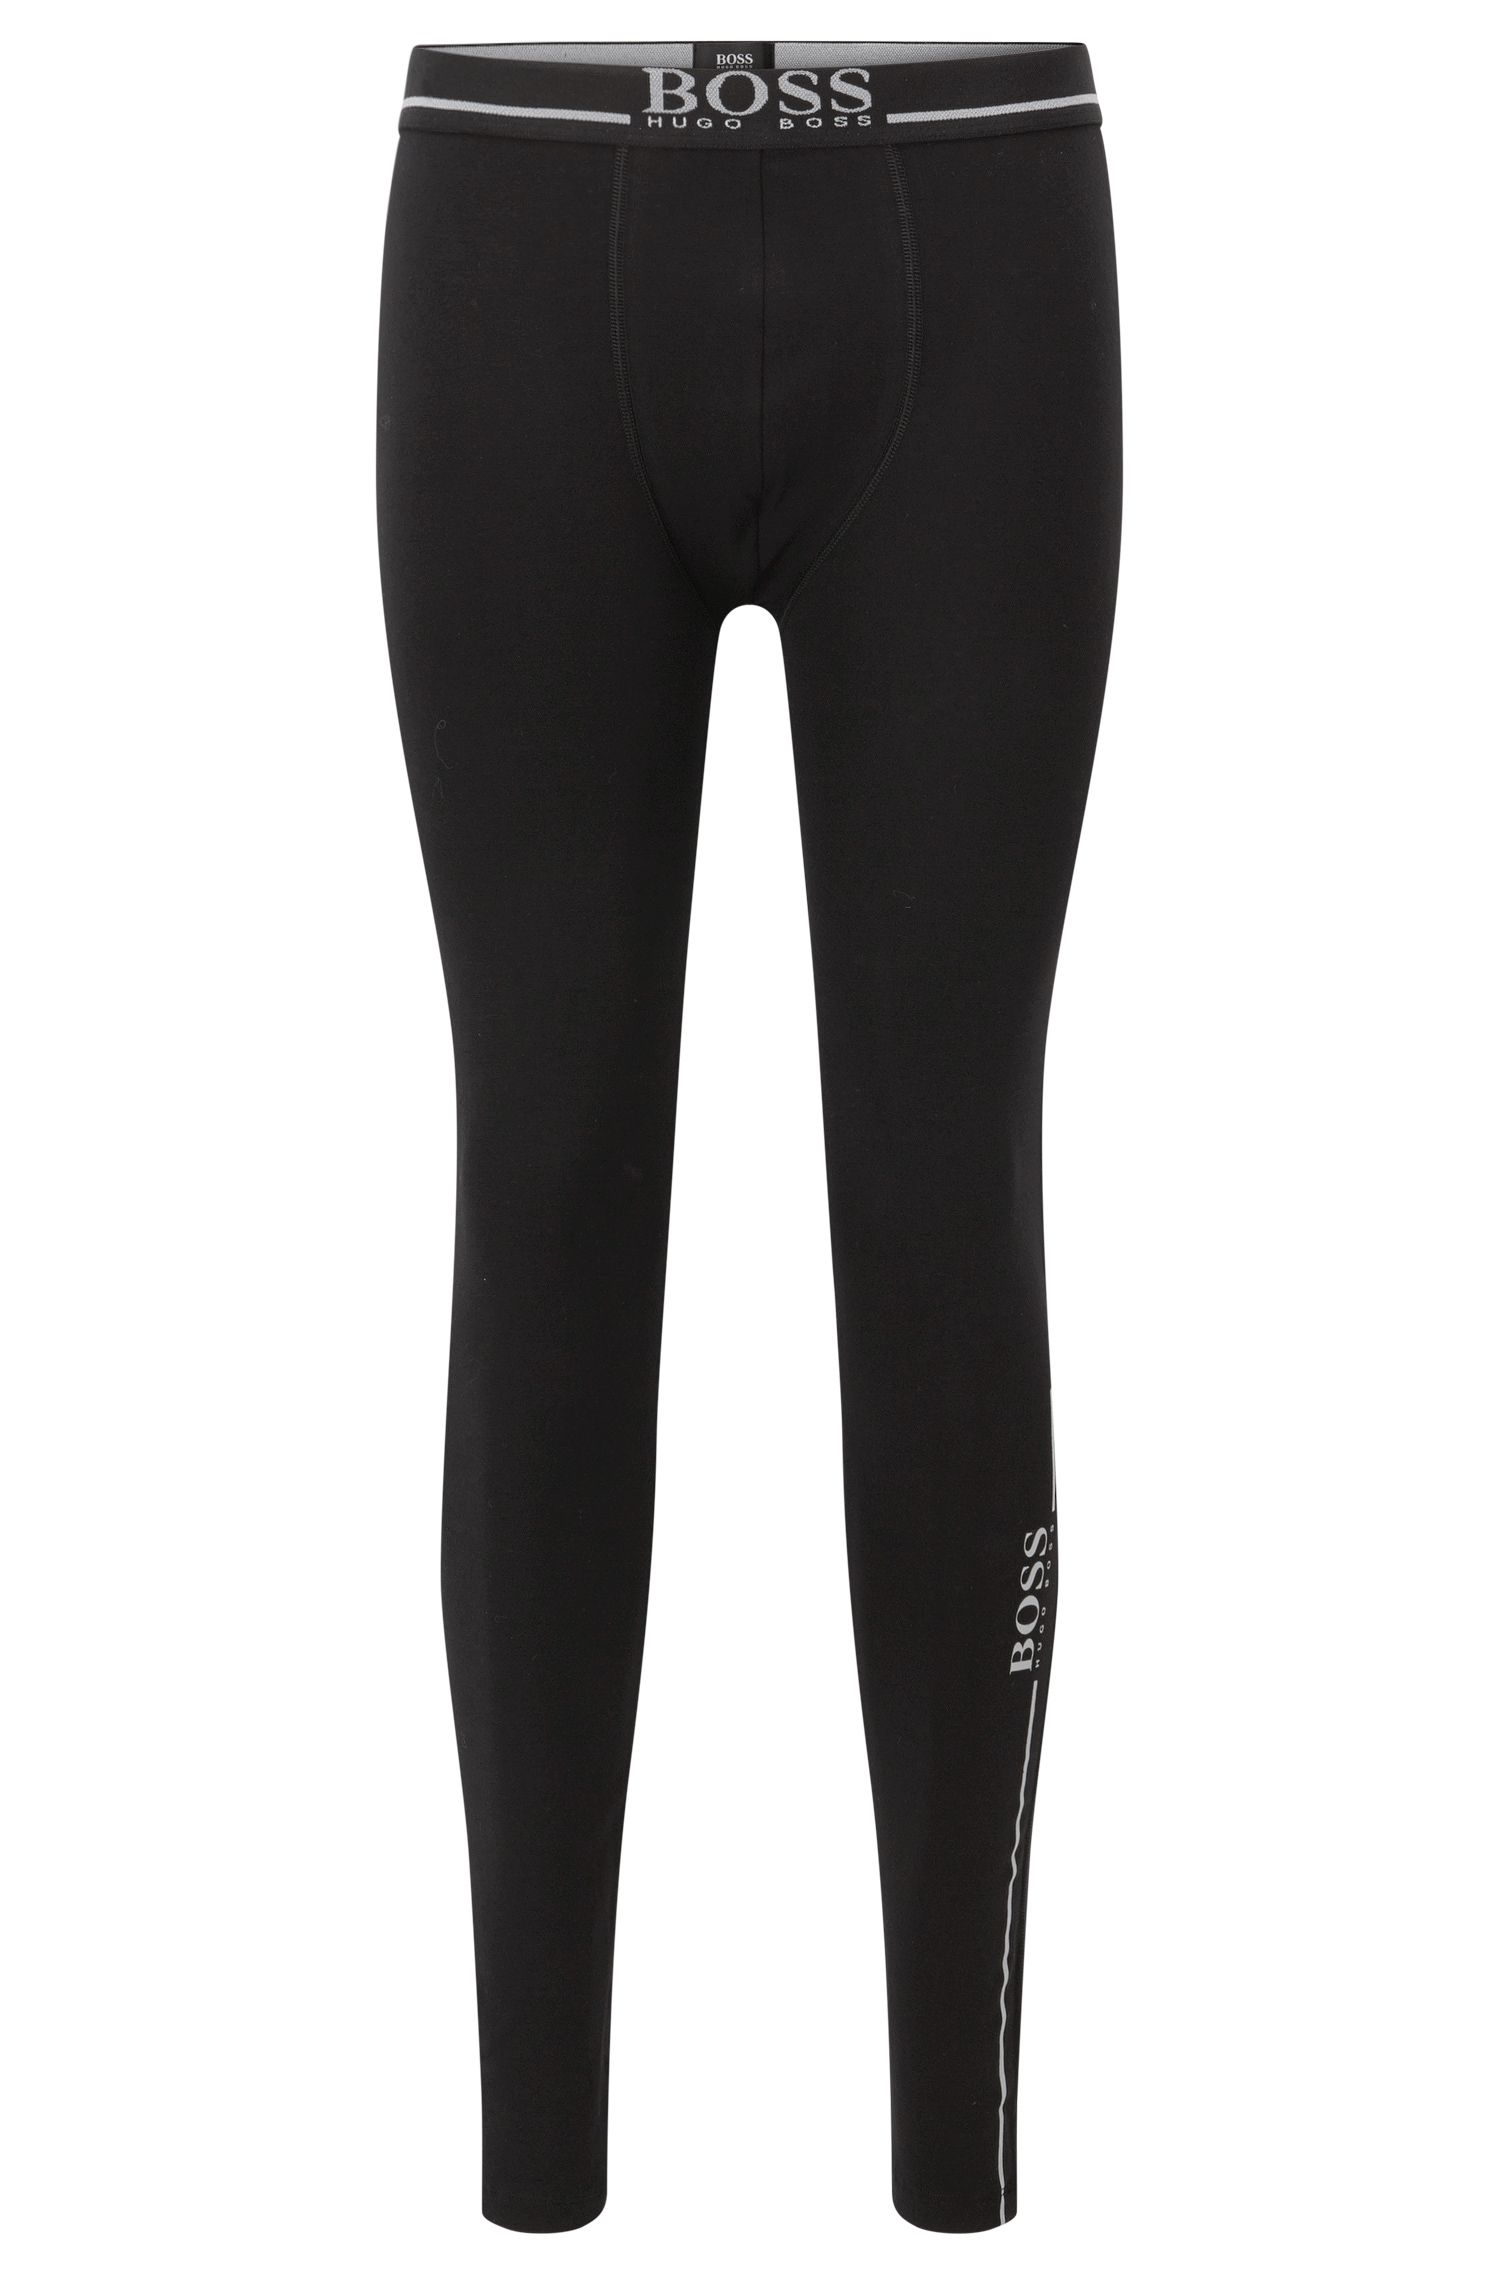 'Long John 24 Logo' | Stretch Cotton Long John Pants, Black